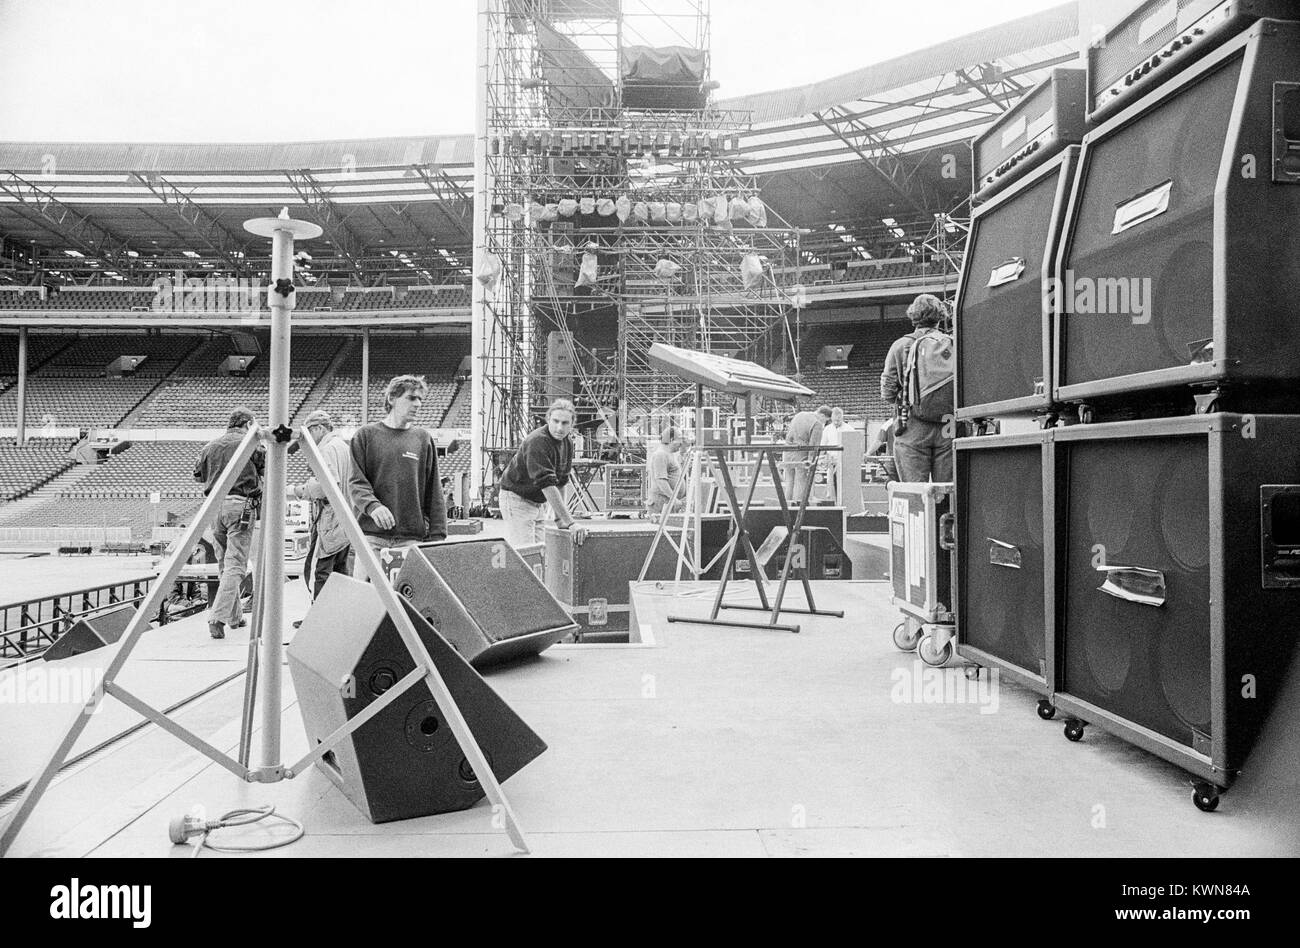 Edwin Shirley Staging crew building a stage in Wembley Stadium for the Jean Michel Jarre concert tour, Europe in - Stock Image